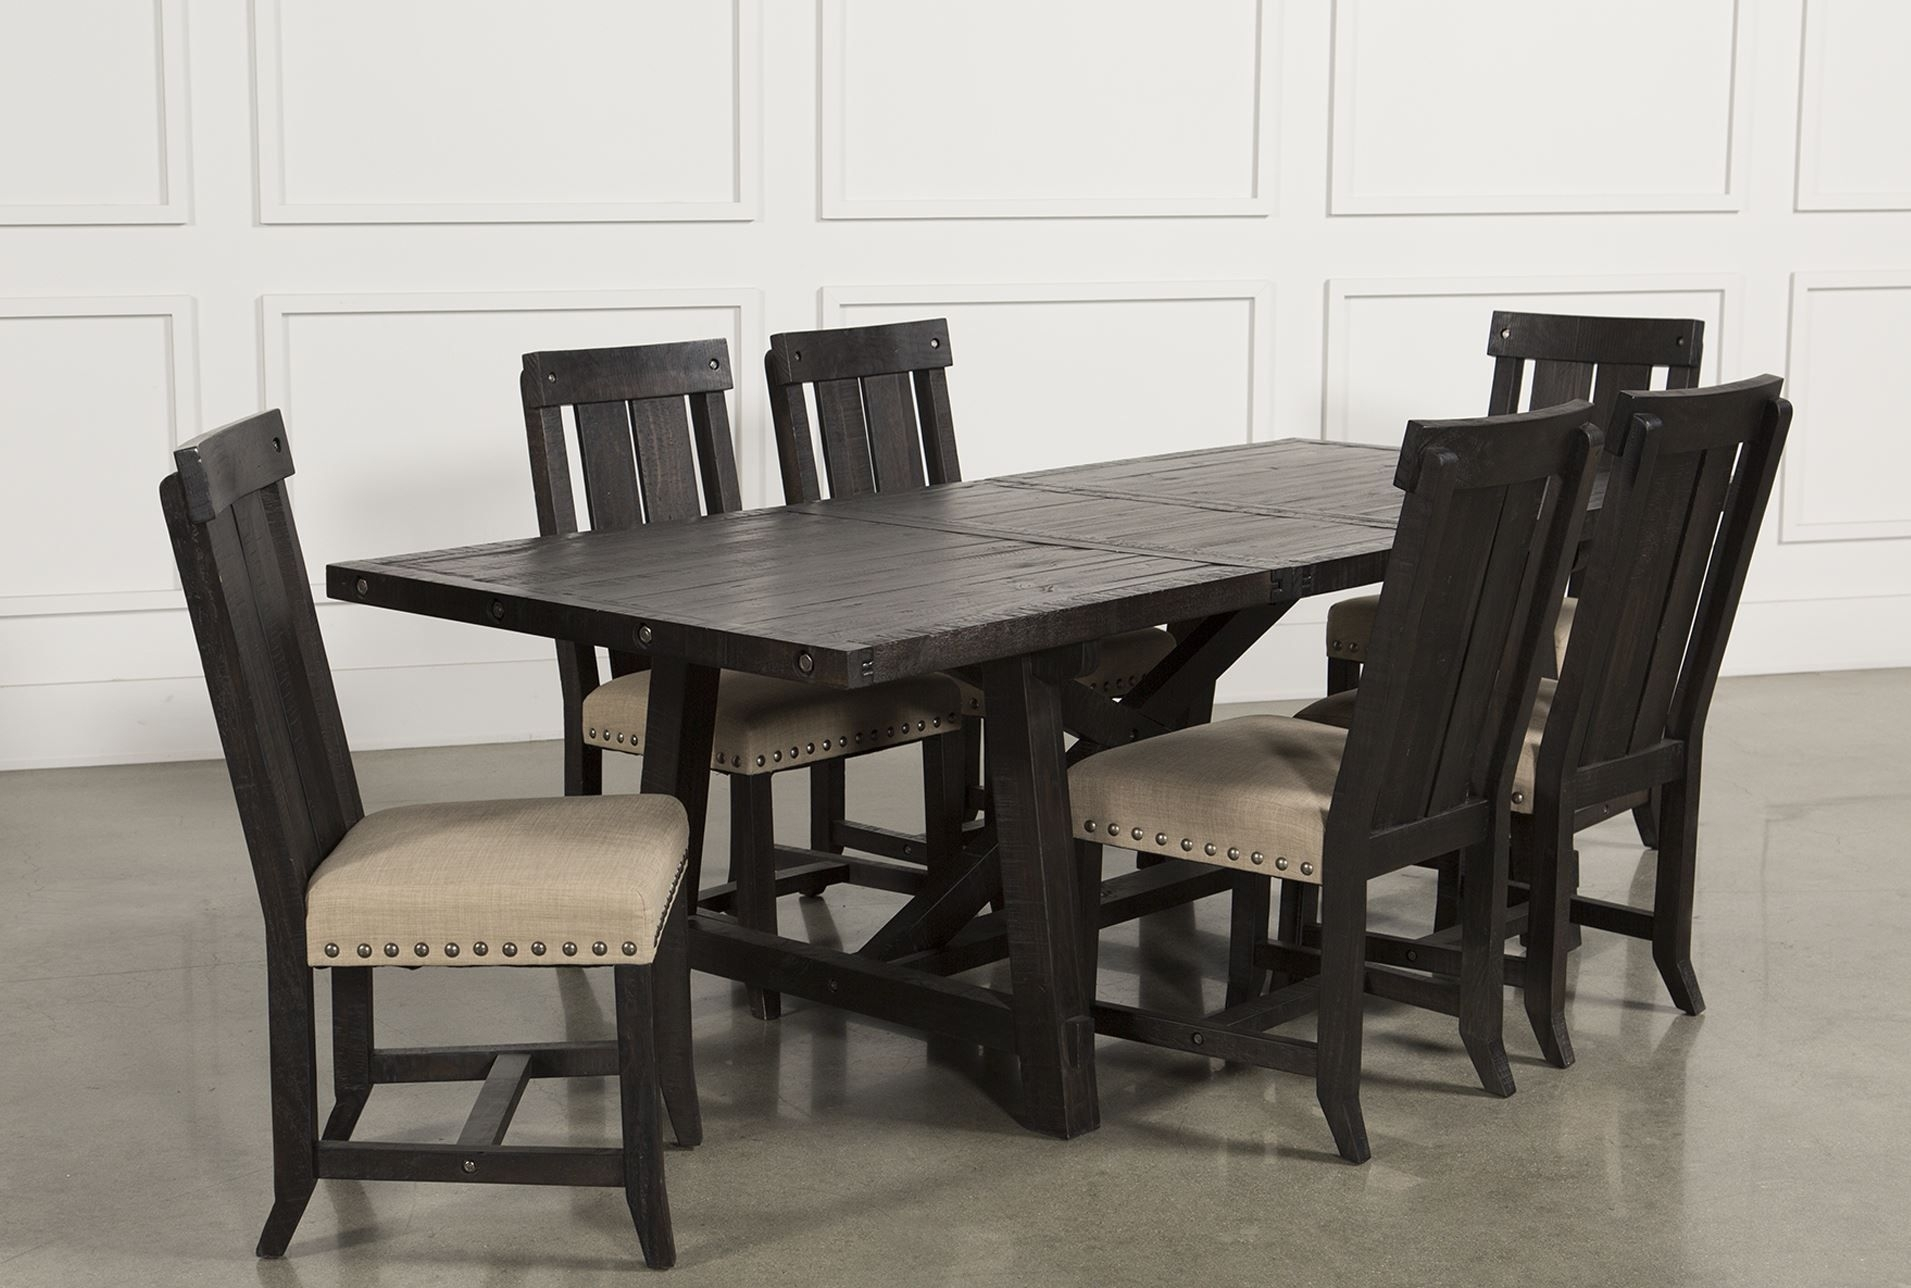 Jaxon 7 Piece Rectangle Dining Set W/wood Chairs | Home, Future Home In Recent Partridge 7 Piece Dining Sets (Photo 14 of 20)